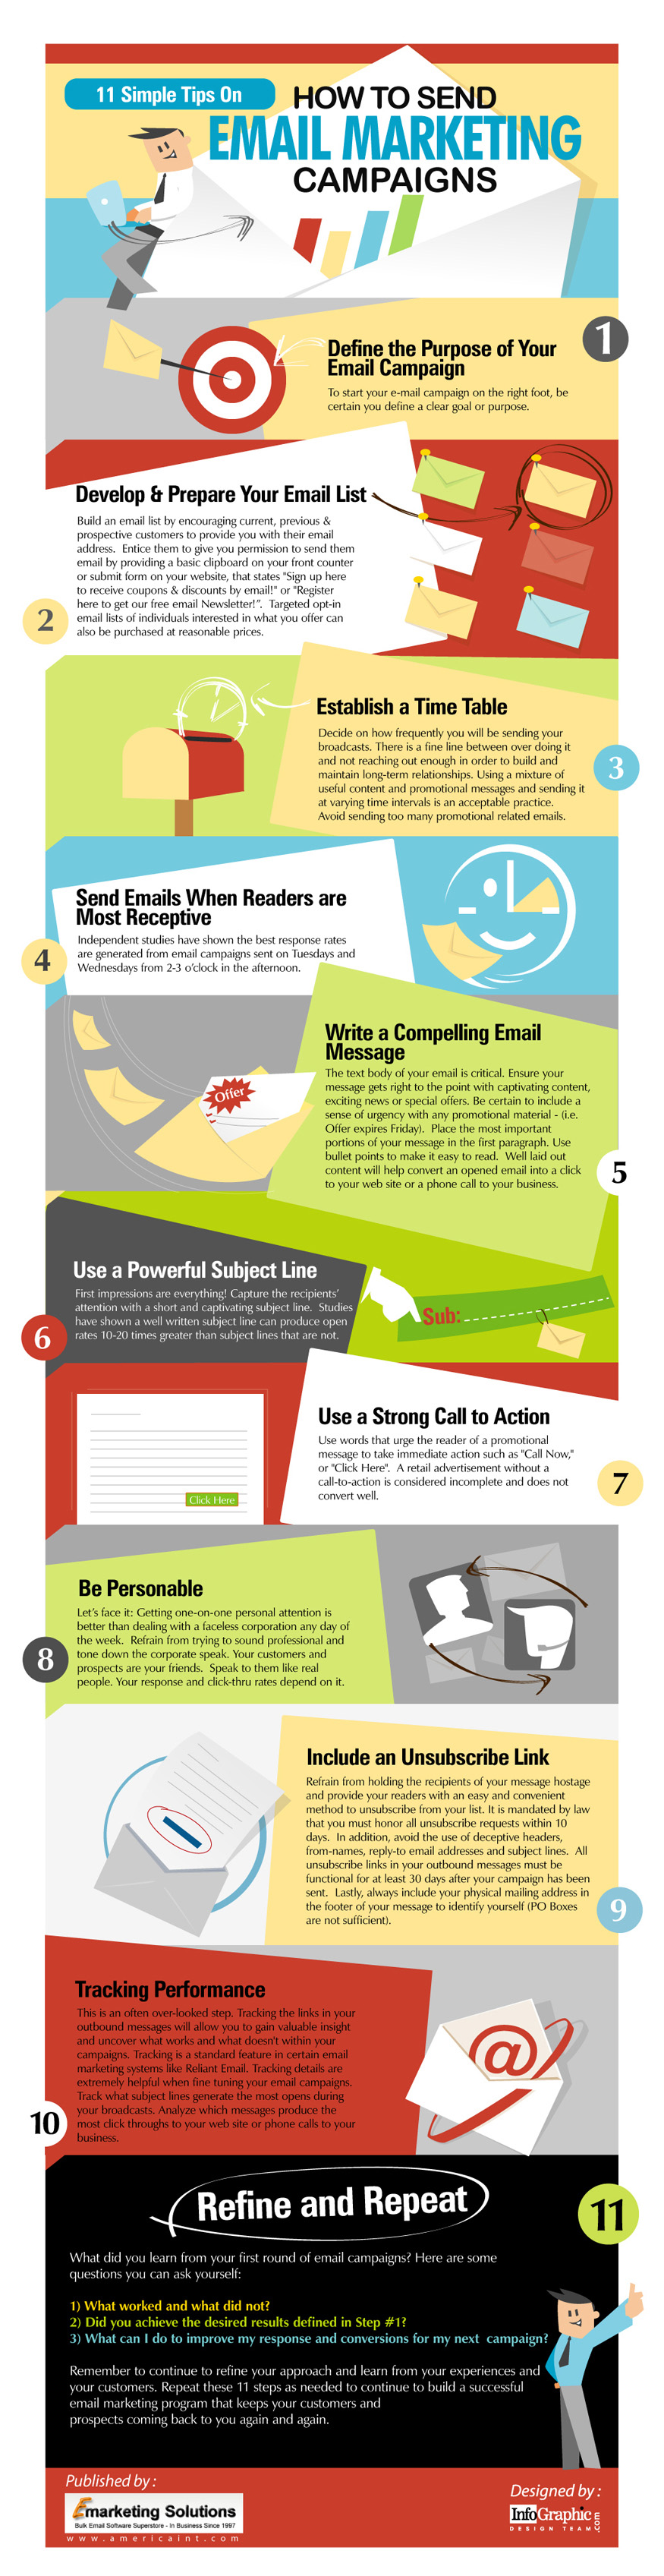 How to Send Email Marketing Campaigns